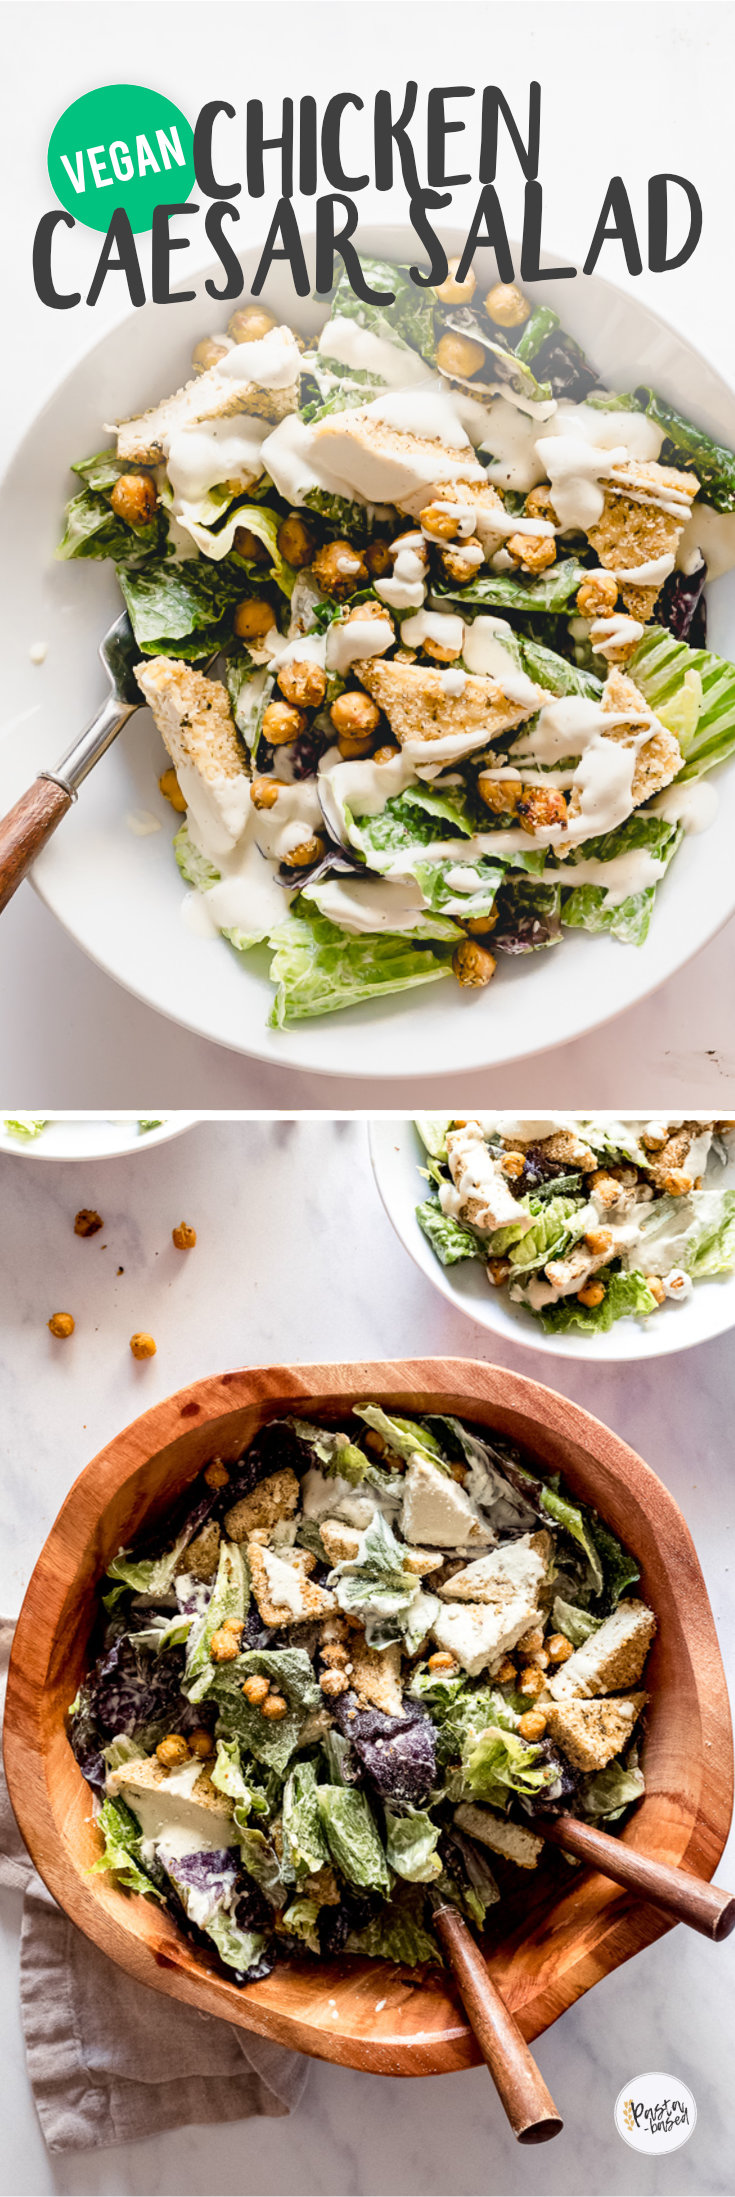 Vegan Chicken Caesar Salad by Pasta-based.